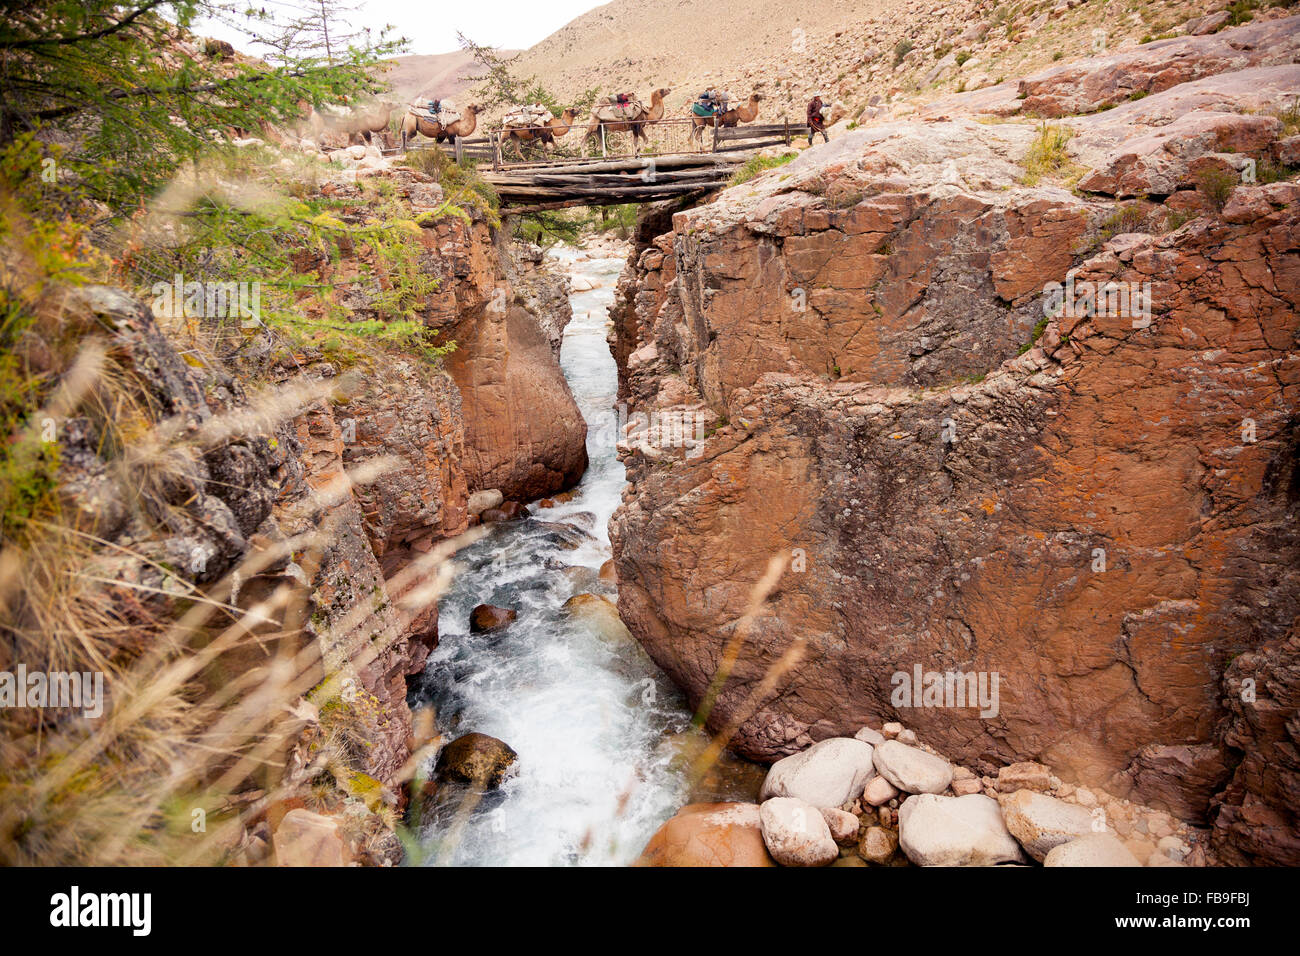 A nomad guide leads his pack camels over a log bridge during a trek in remote Kharkhiraa Turgen National Park, Mongolia. - Stock Image